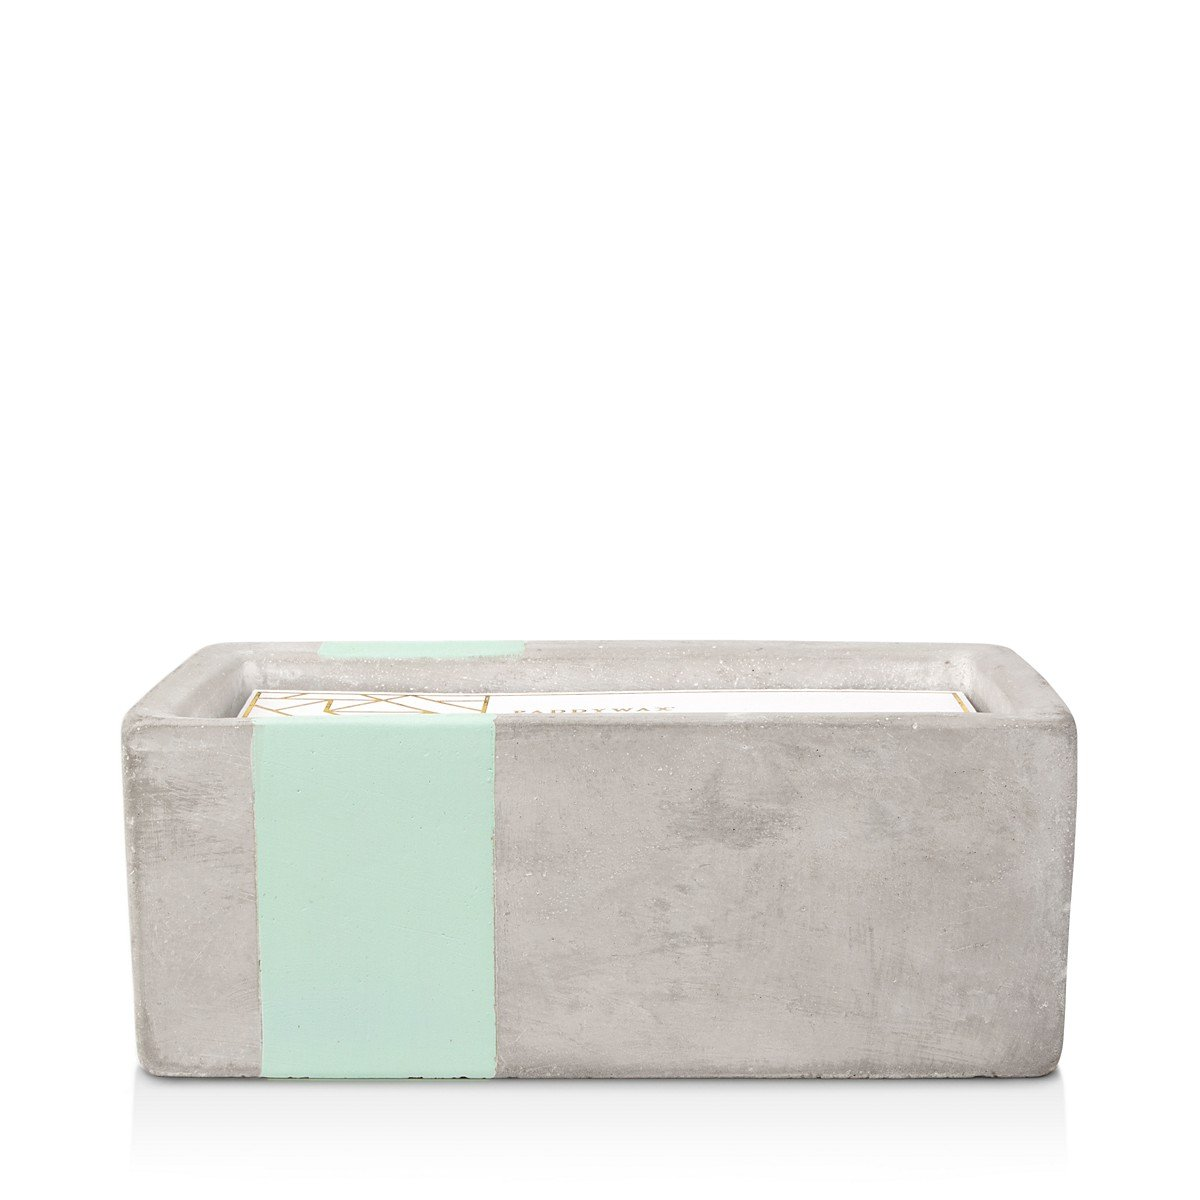 Paddywax Urban Concrete Rectangle Mint Sea Salt & Sage Candle